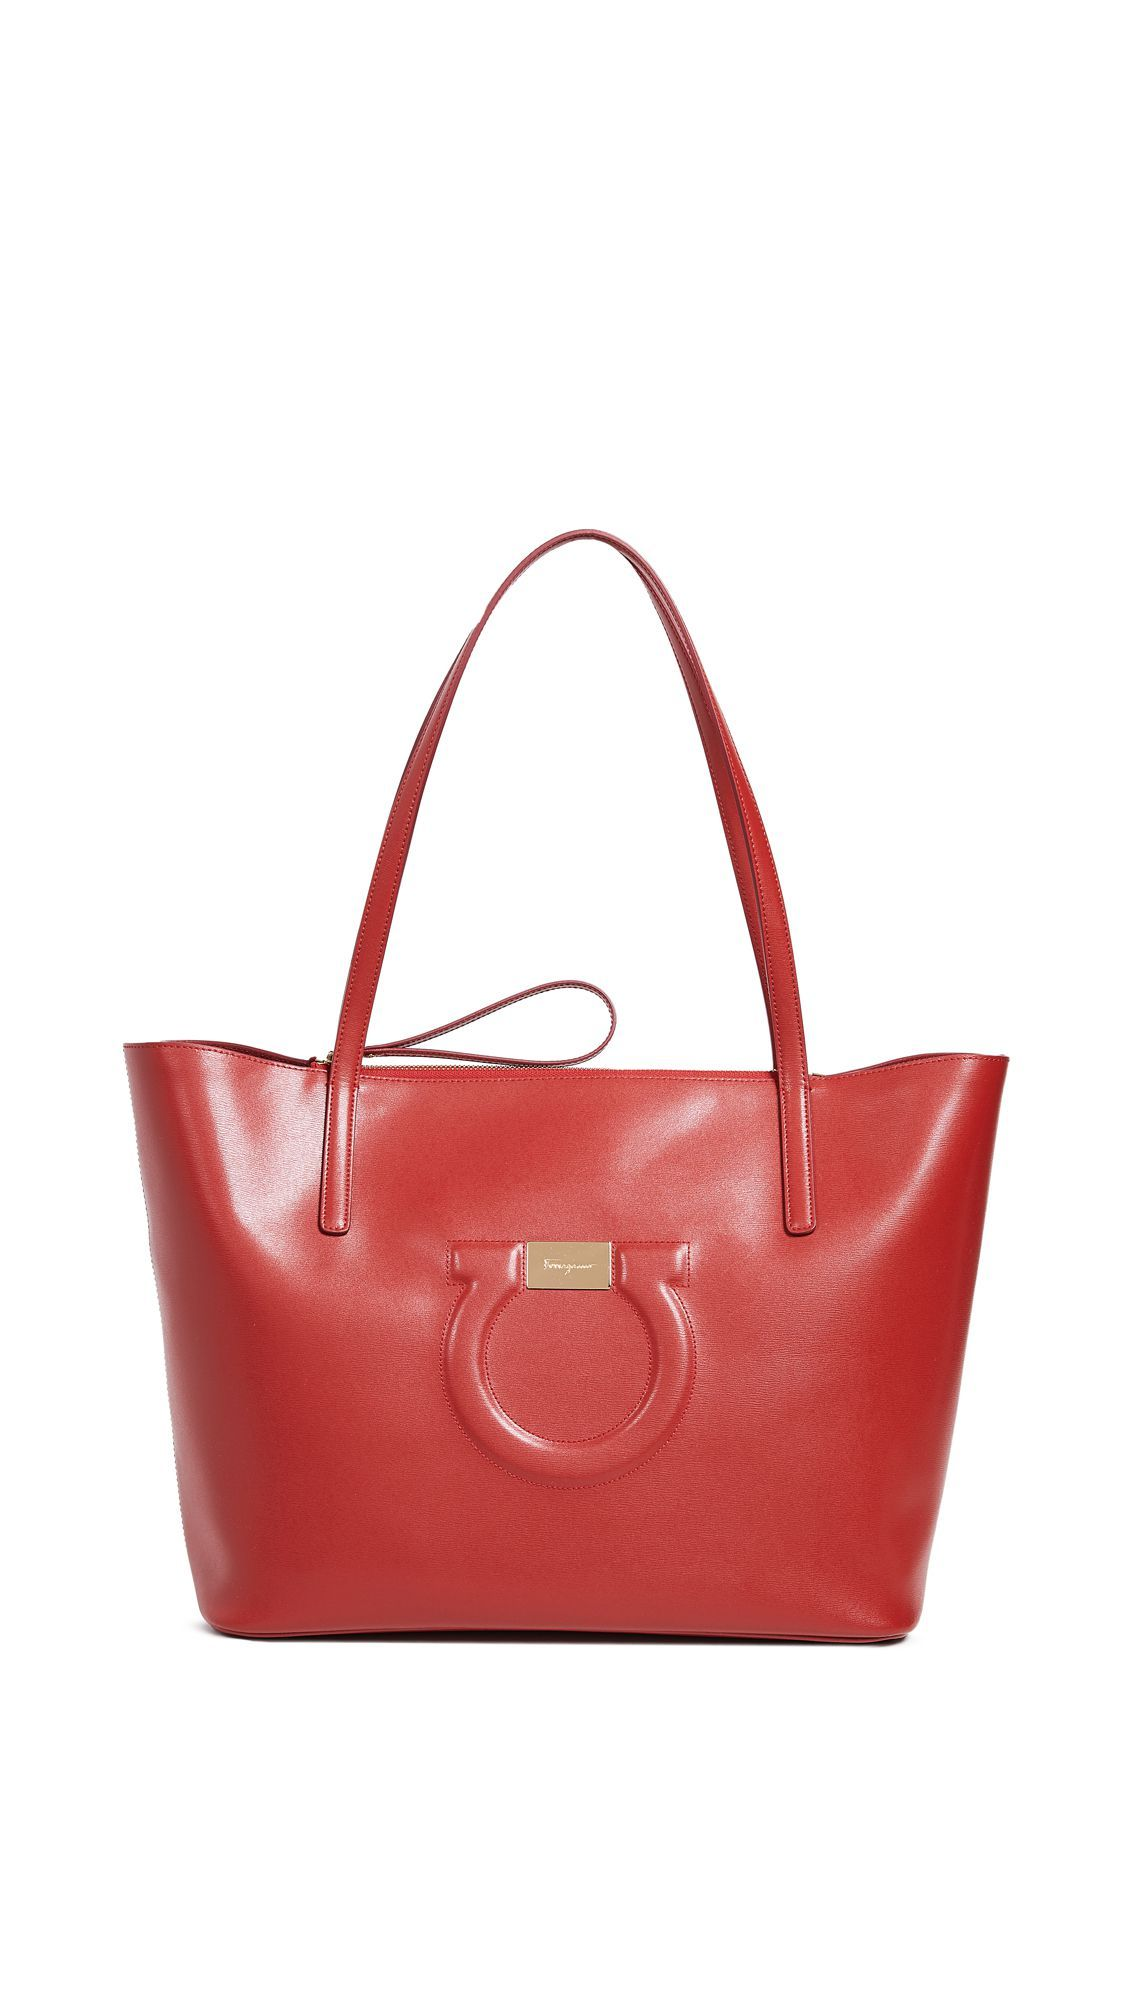 9c1f0b9b32 15 Best Laptop Bags For Women 2019 - Stylish Work Bags For Your Computer